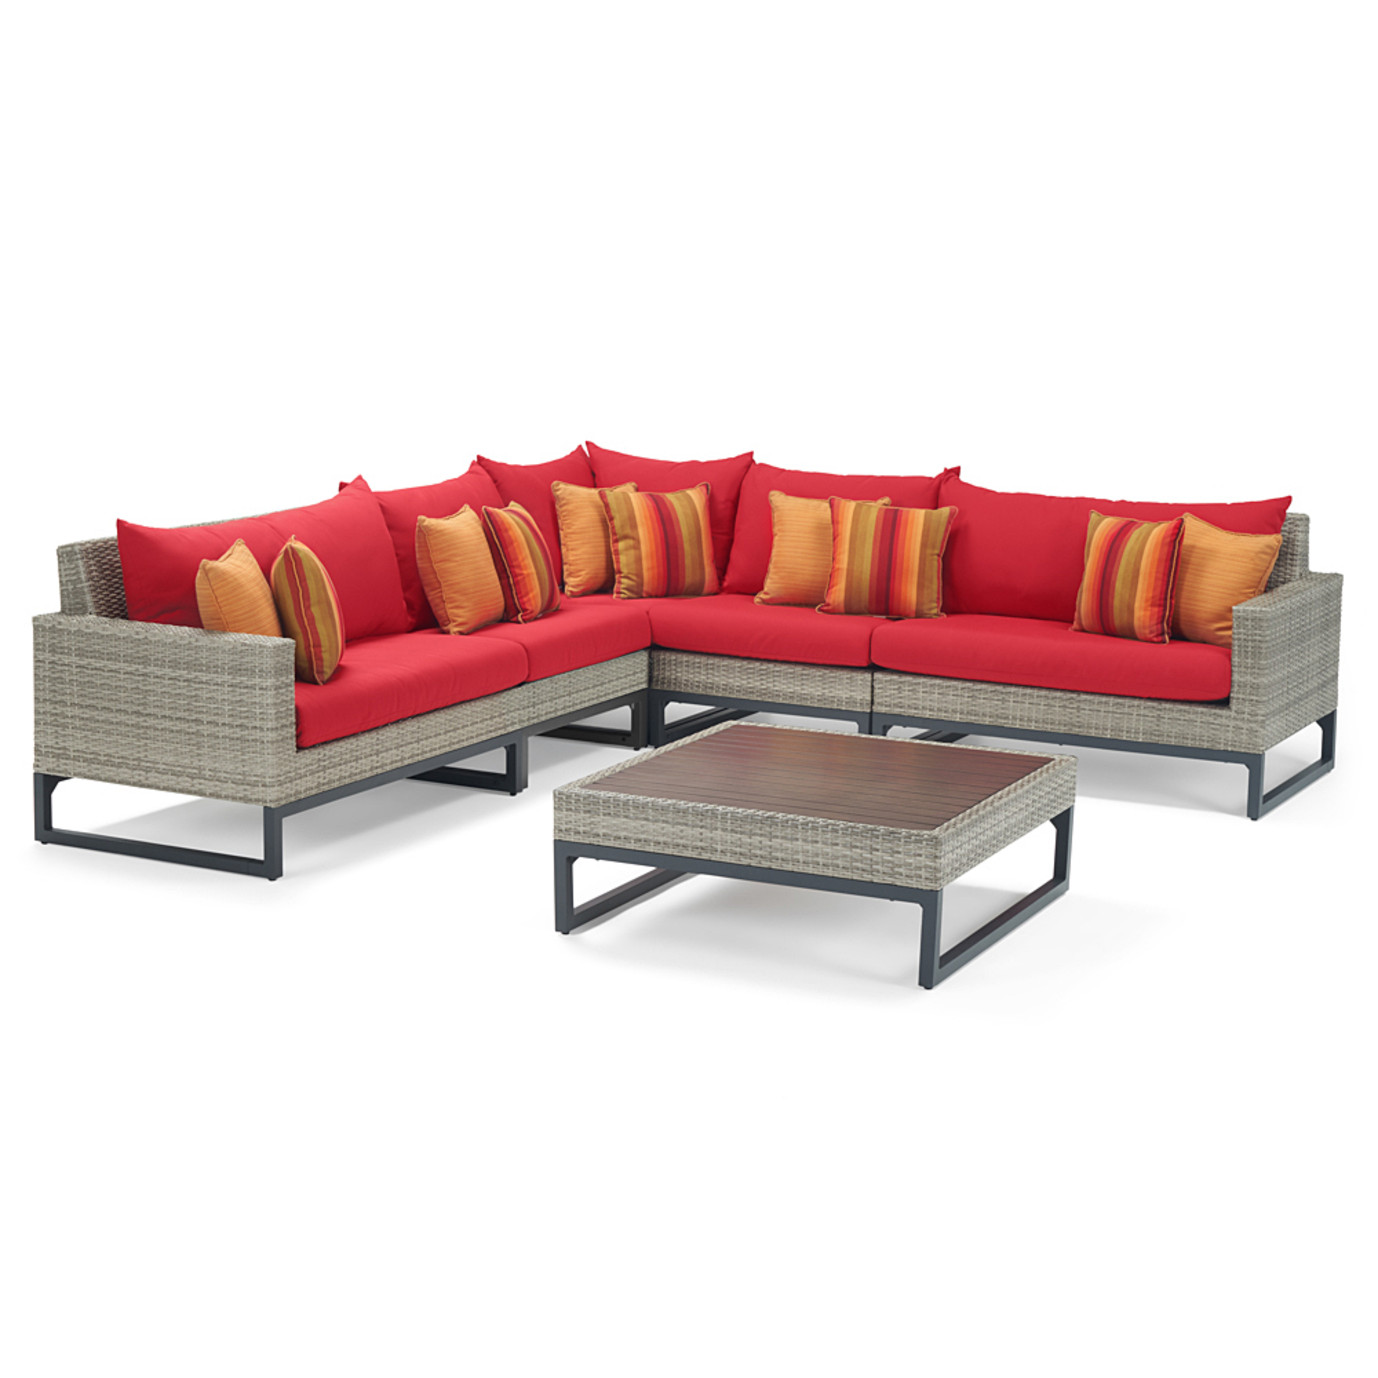 Milo Gray 6 Piece Sectional - Sunset Red